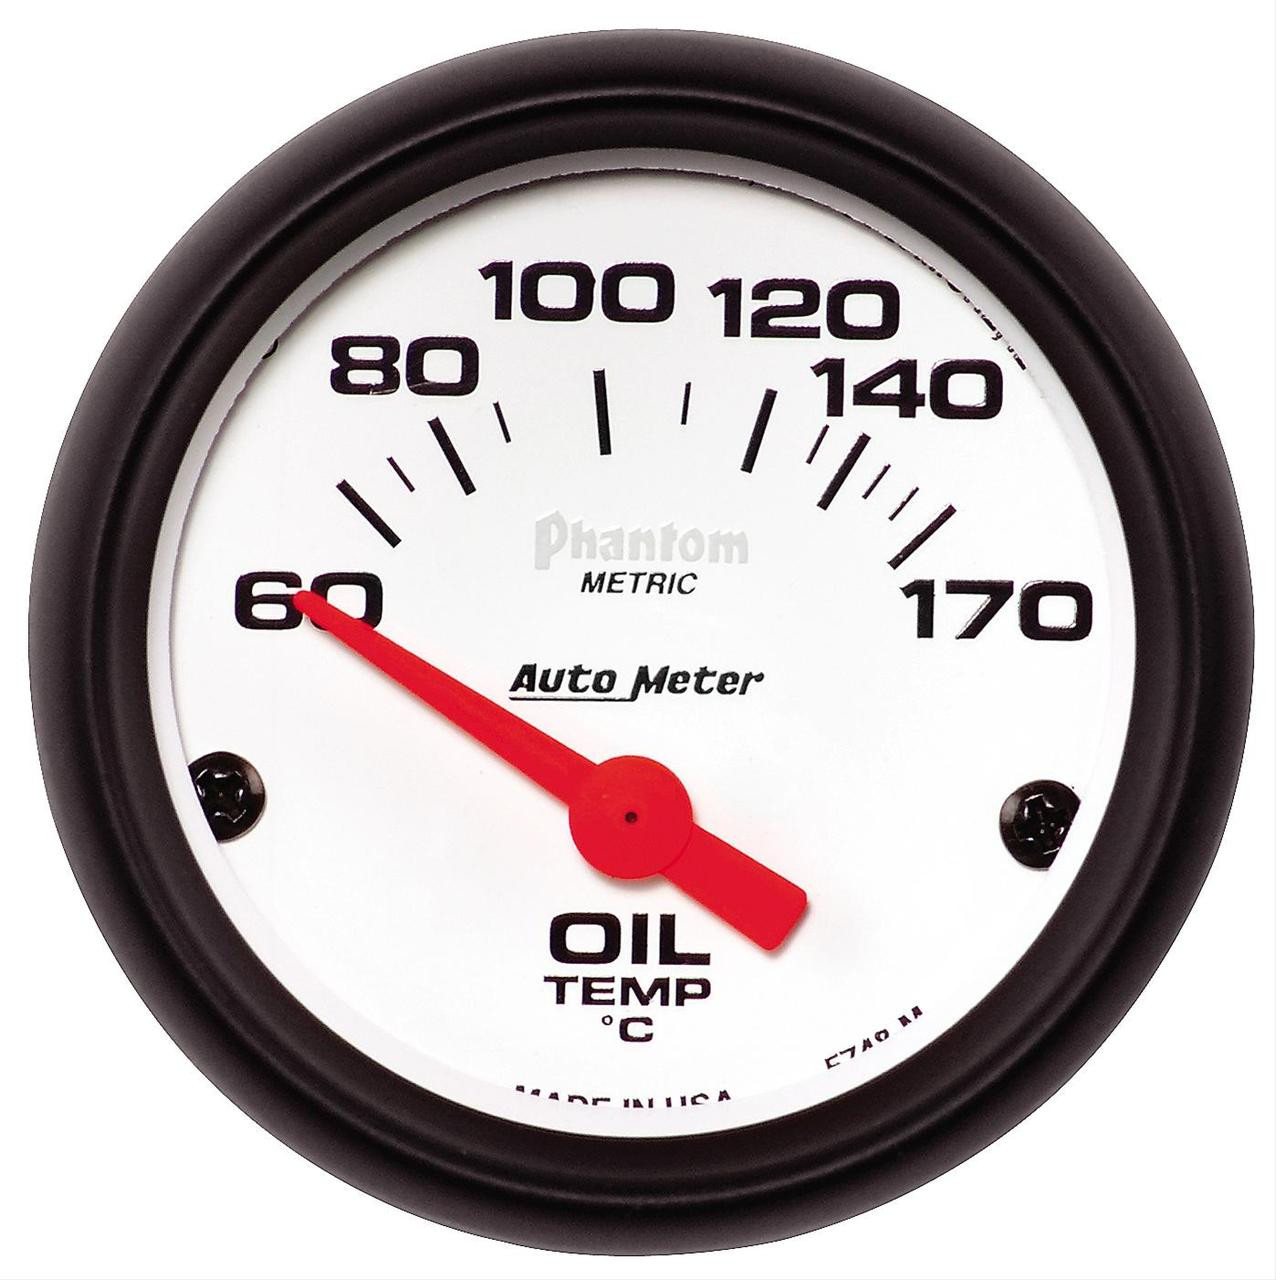 Auto Meter Phantom - Oil Temperature Gauge - CELSIUS (60 ...